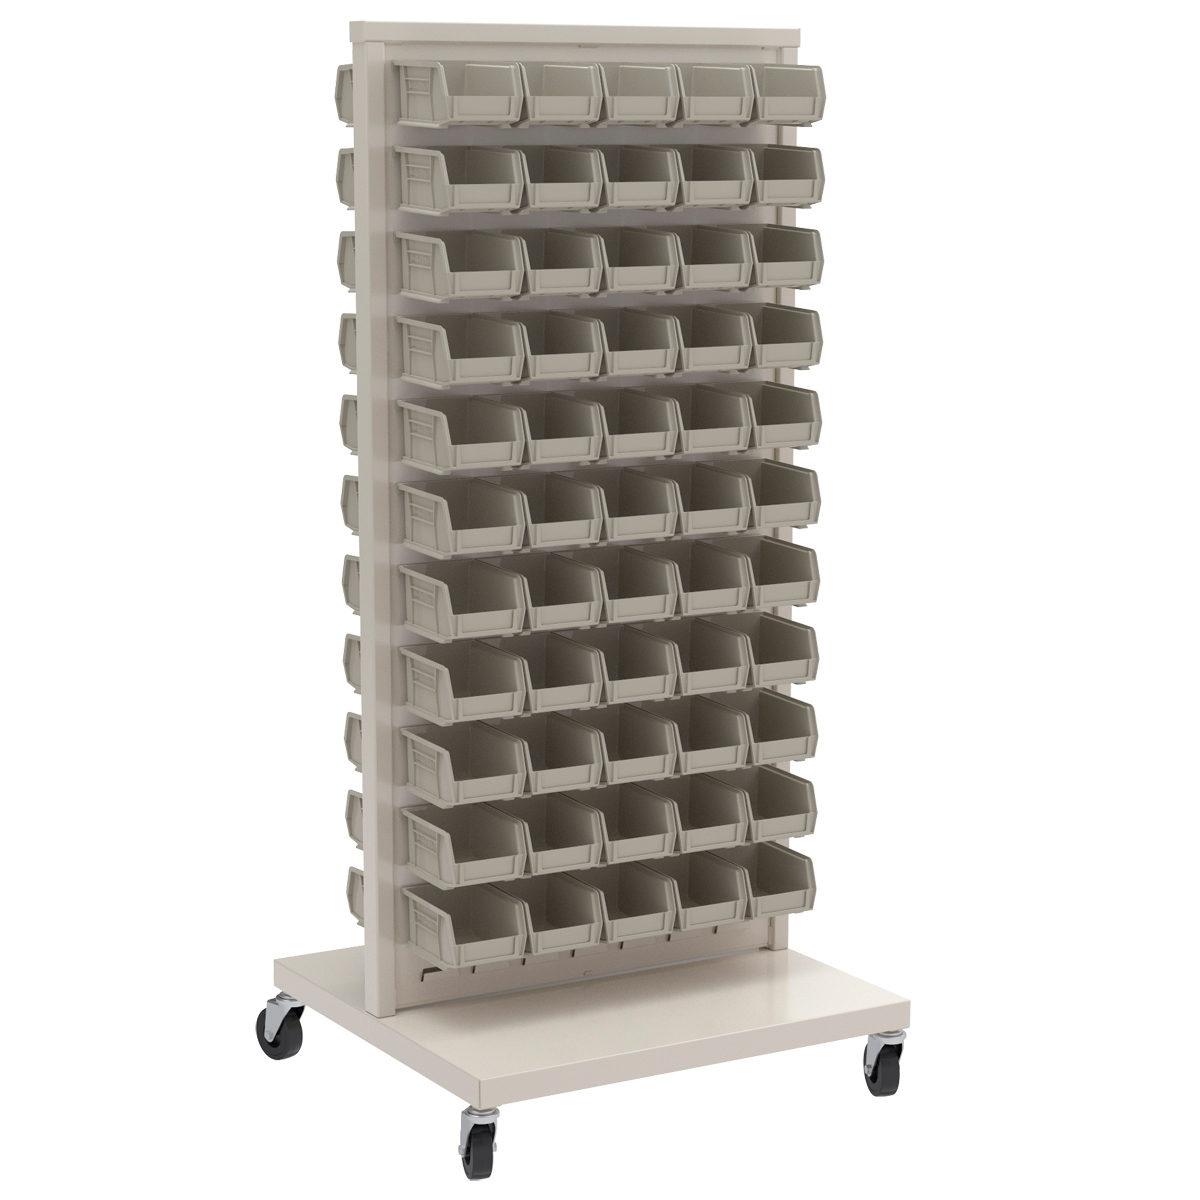 Item DISCONTINUED by Manufacturer.  ReadySpace Floor Unit w/ 120 AkroBins, 30210STONE, White (30553210S).  This item sold in carton quantities of 1.